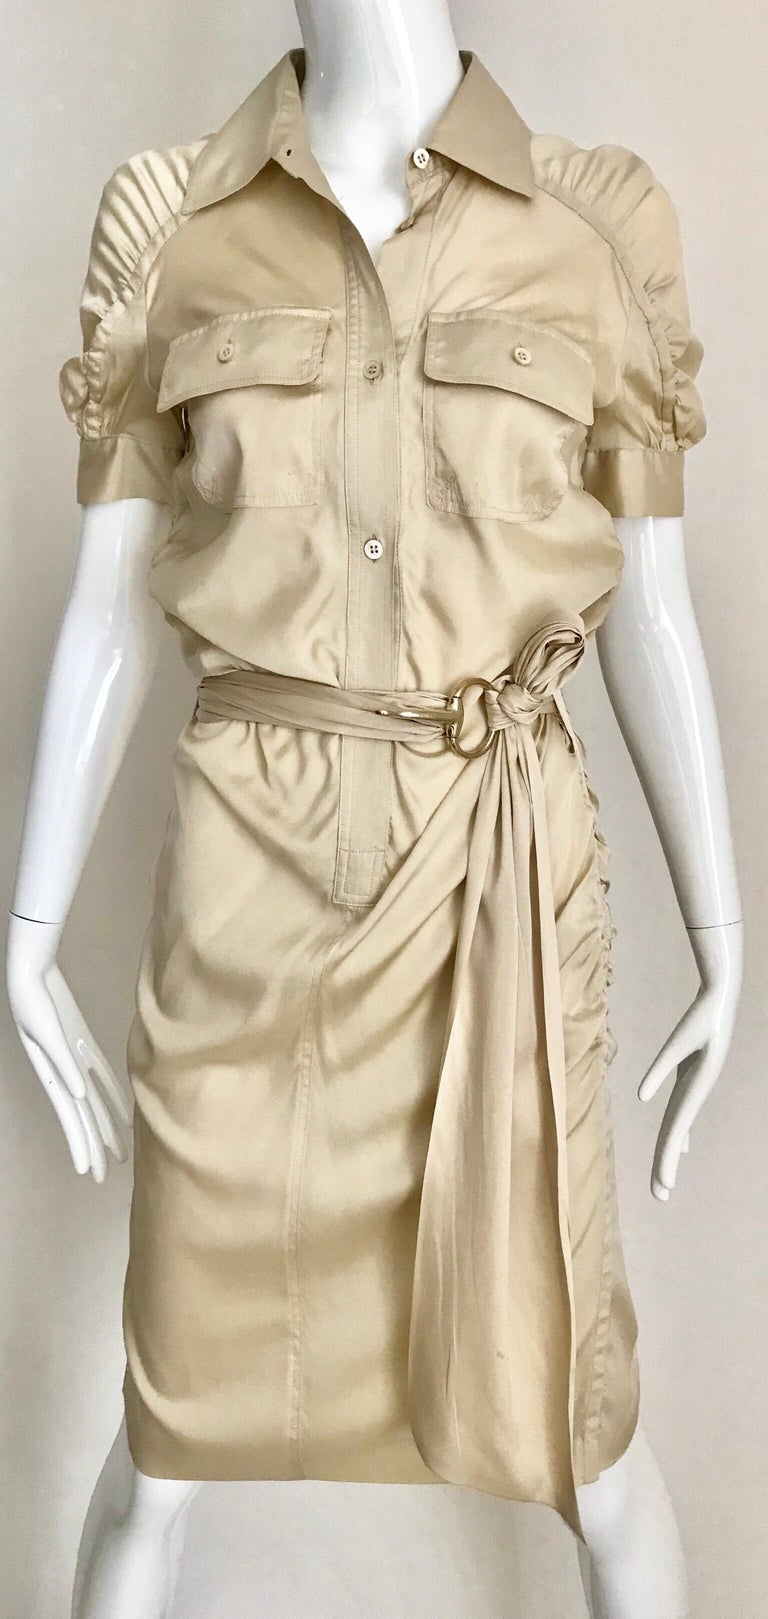 Gucci by Tom Ford tan silk shirt dress with belt. Size: Small Marked size 40 but it fit smaller. ( small smudge near pocket) see image attached Bust: 32 inches/ Hip: 34 inches. **** This Garment has been professionally Dry Cleaned and Ready to